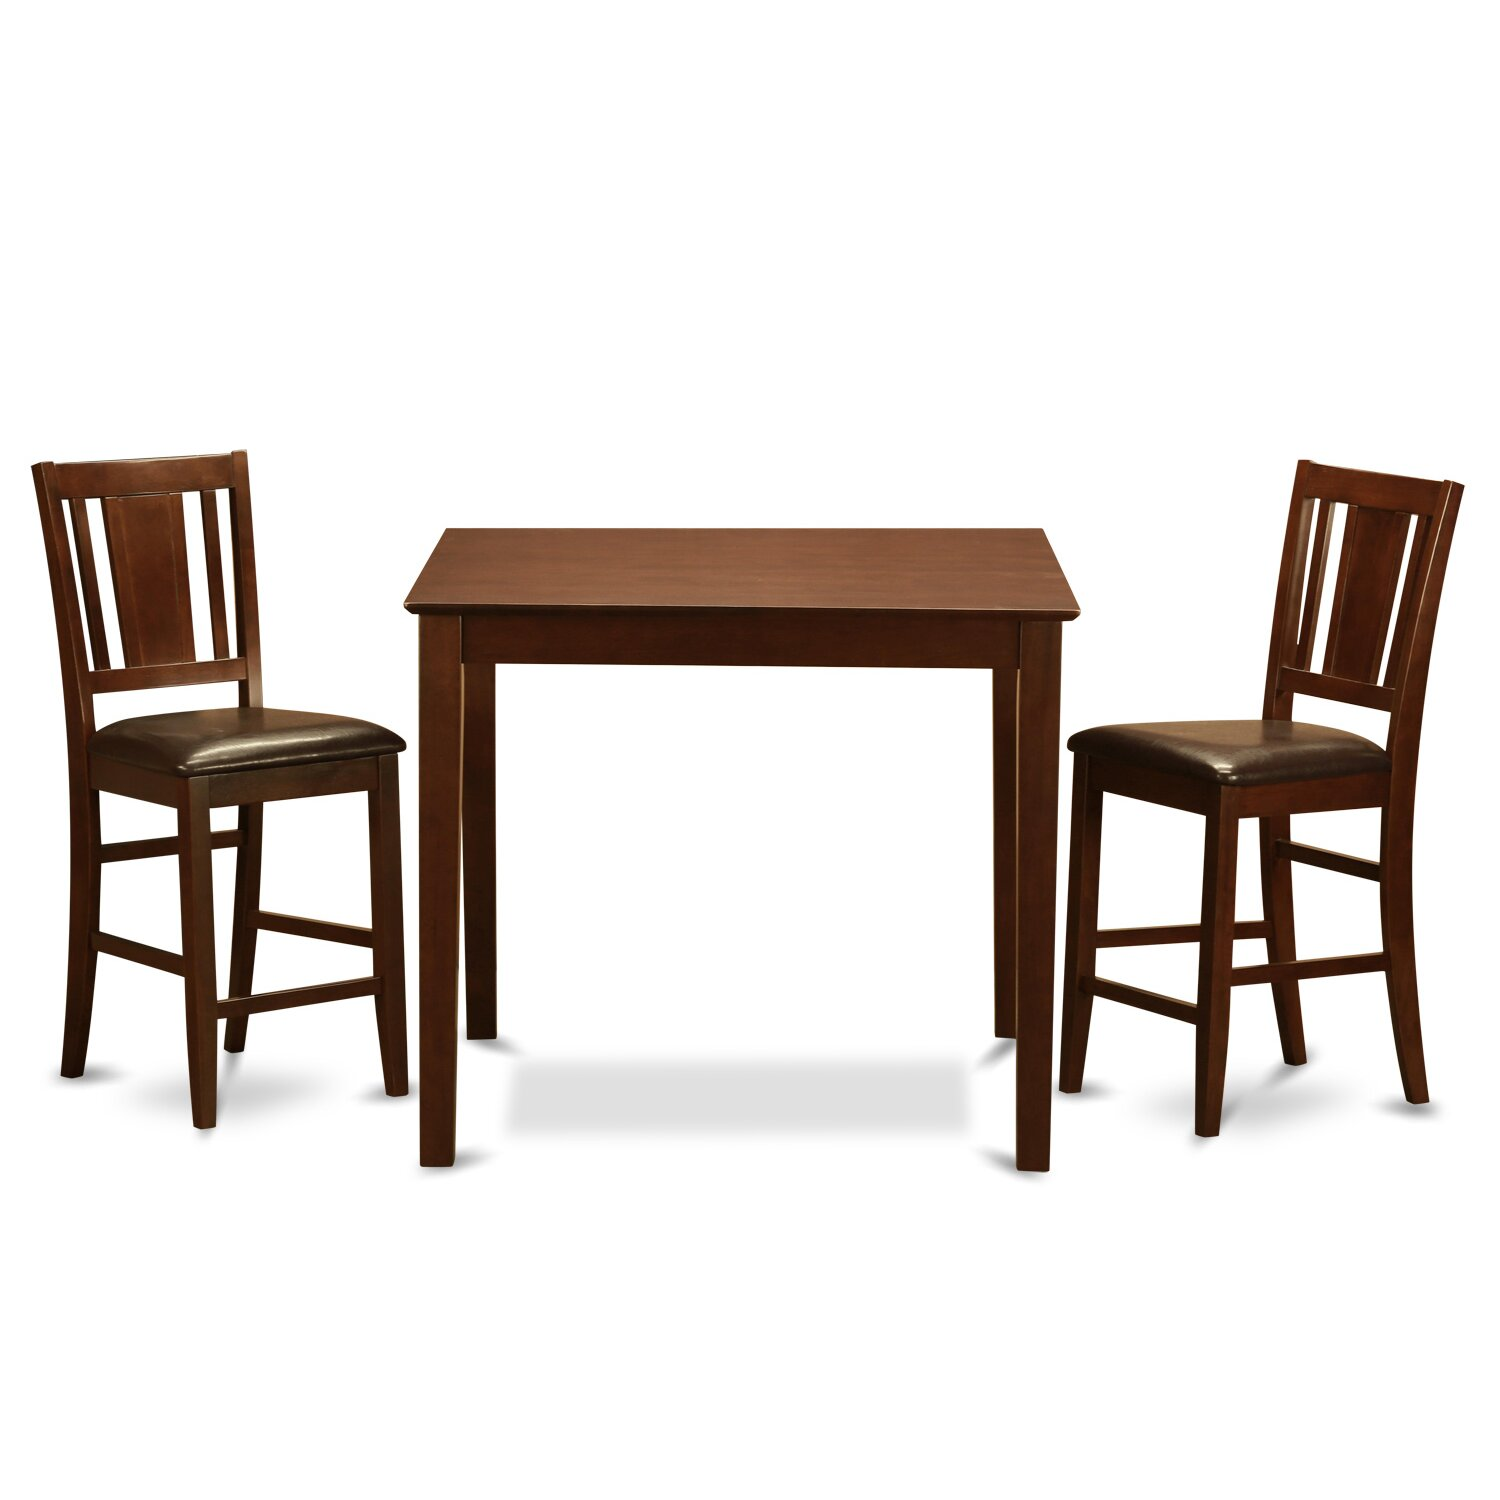 Wooden importers piece counter height pub table set